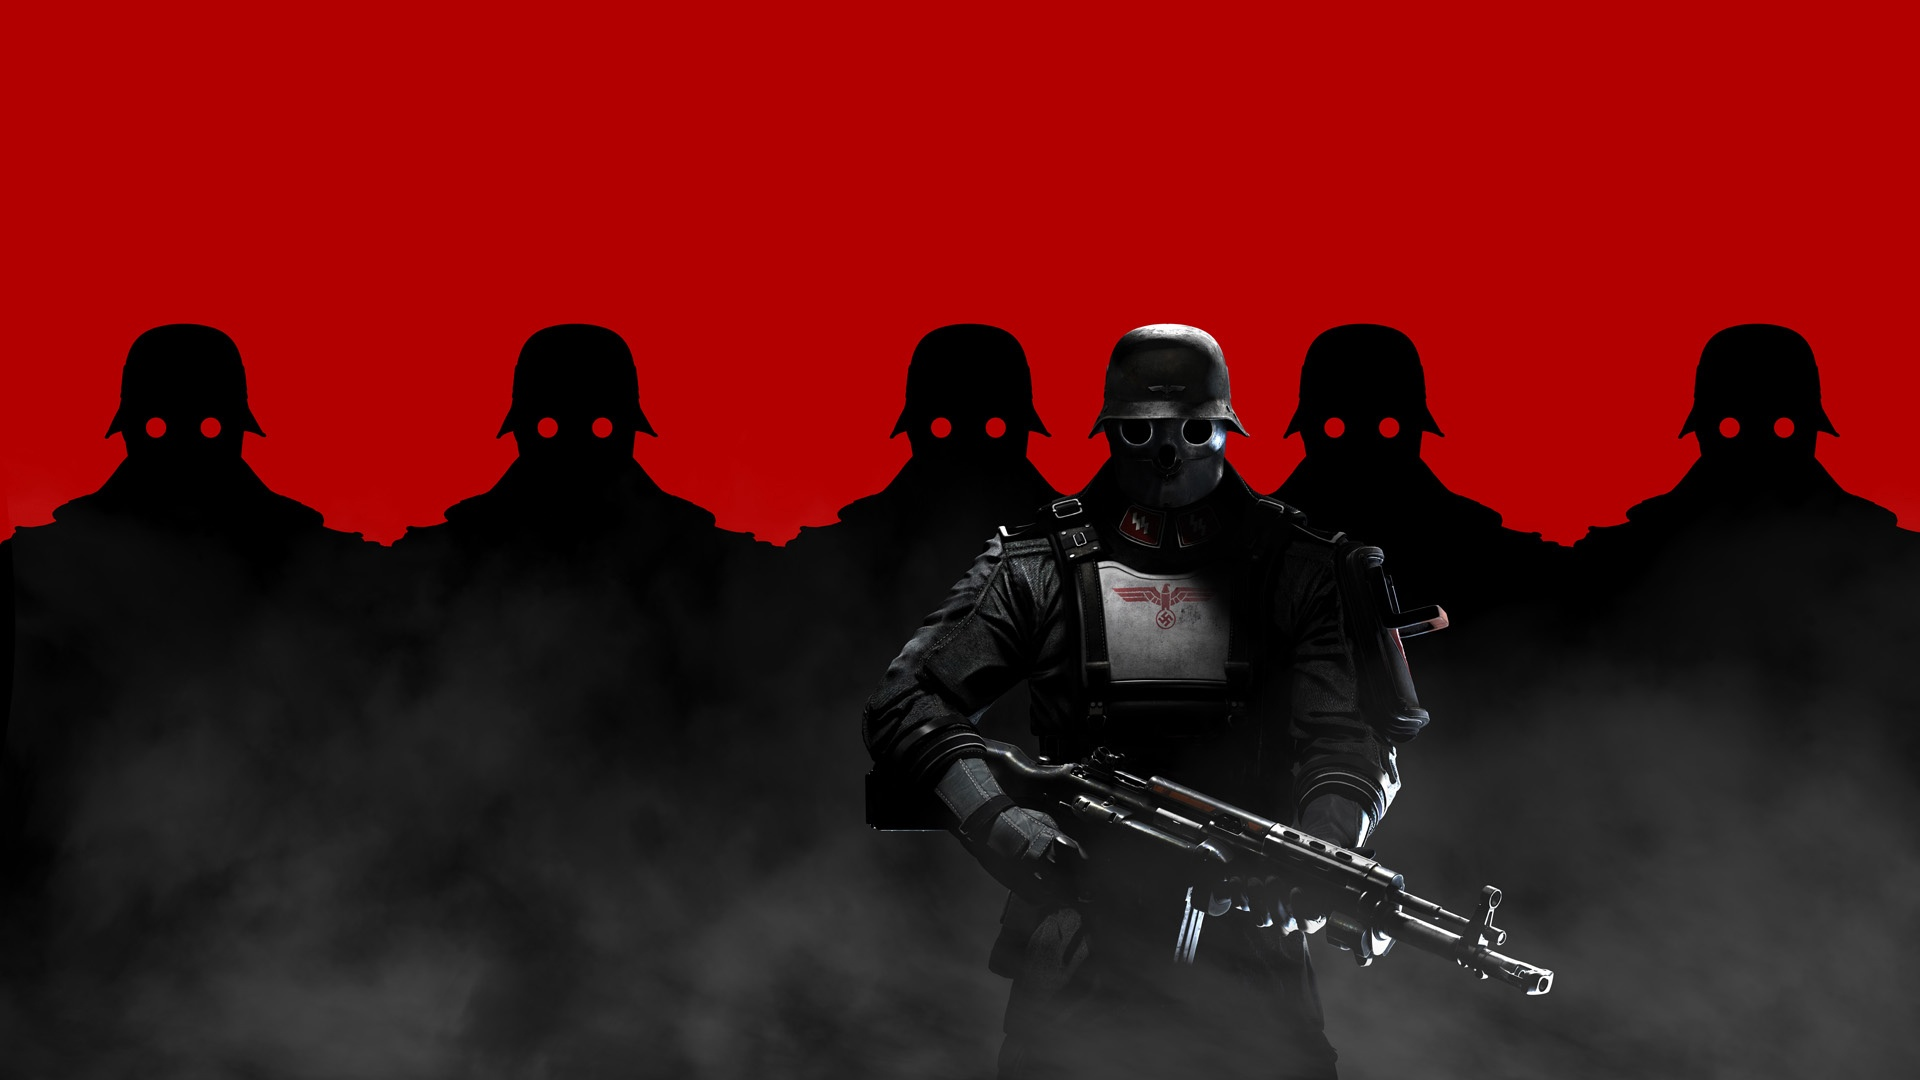 Wolfenstein-The-New-Order-Wallpaper-Background